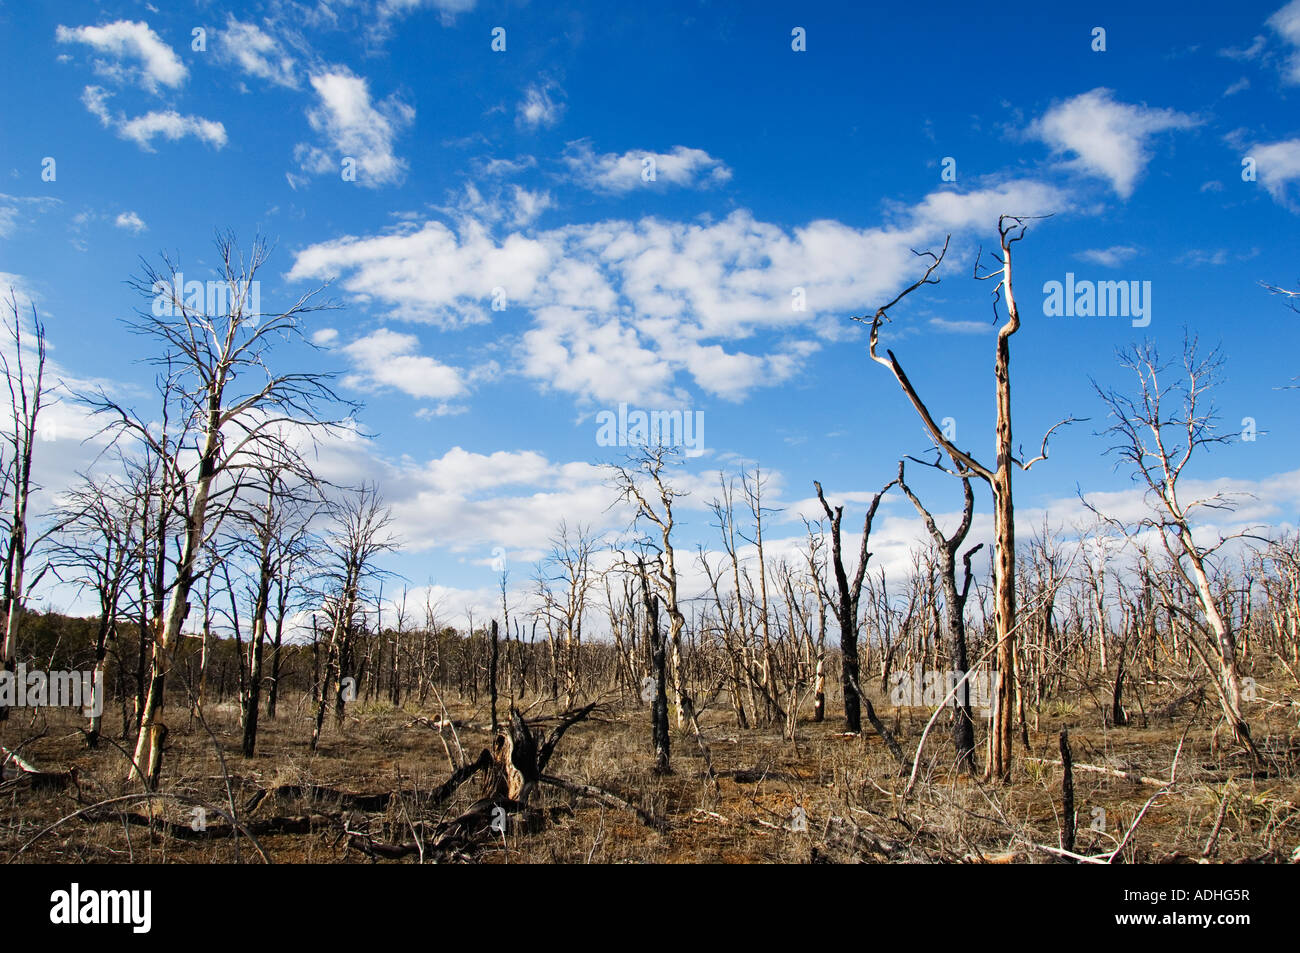 USA Colorado Mesa Verde National Park bush fire damage the